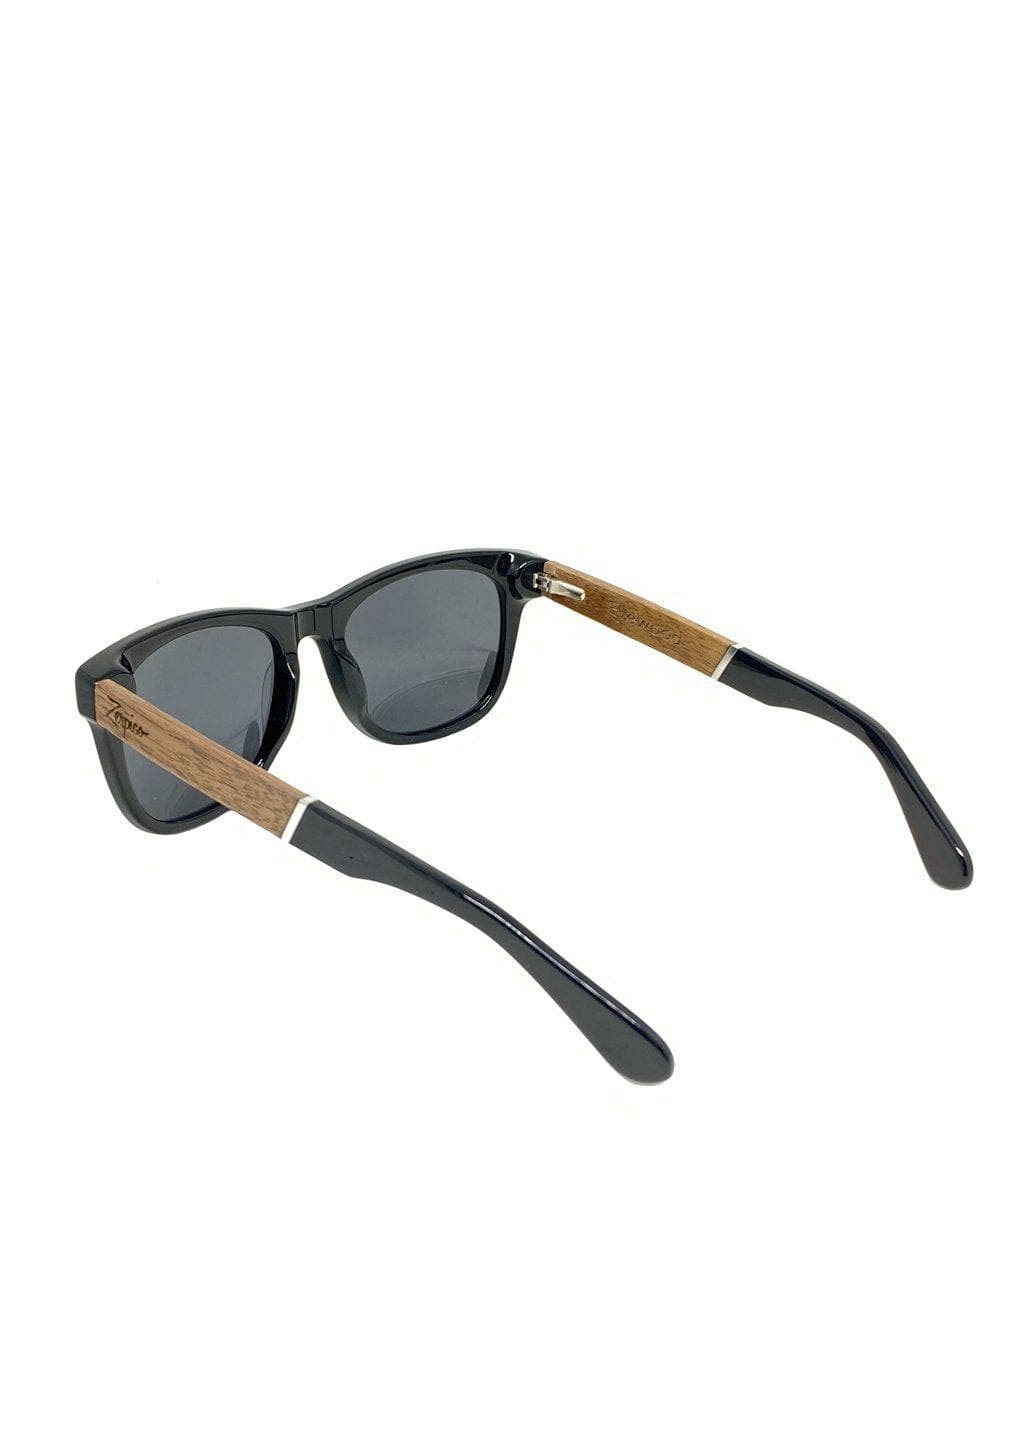 Eyewood Wayfarers - Fusion - Viper - A mix of acetate and wood makes theses sunglasses unique. Back side.